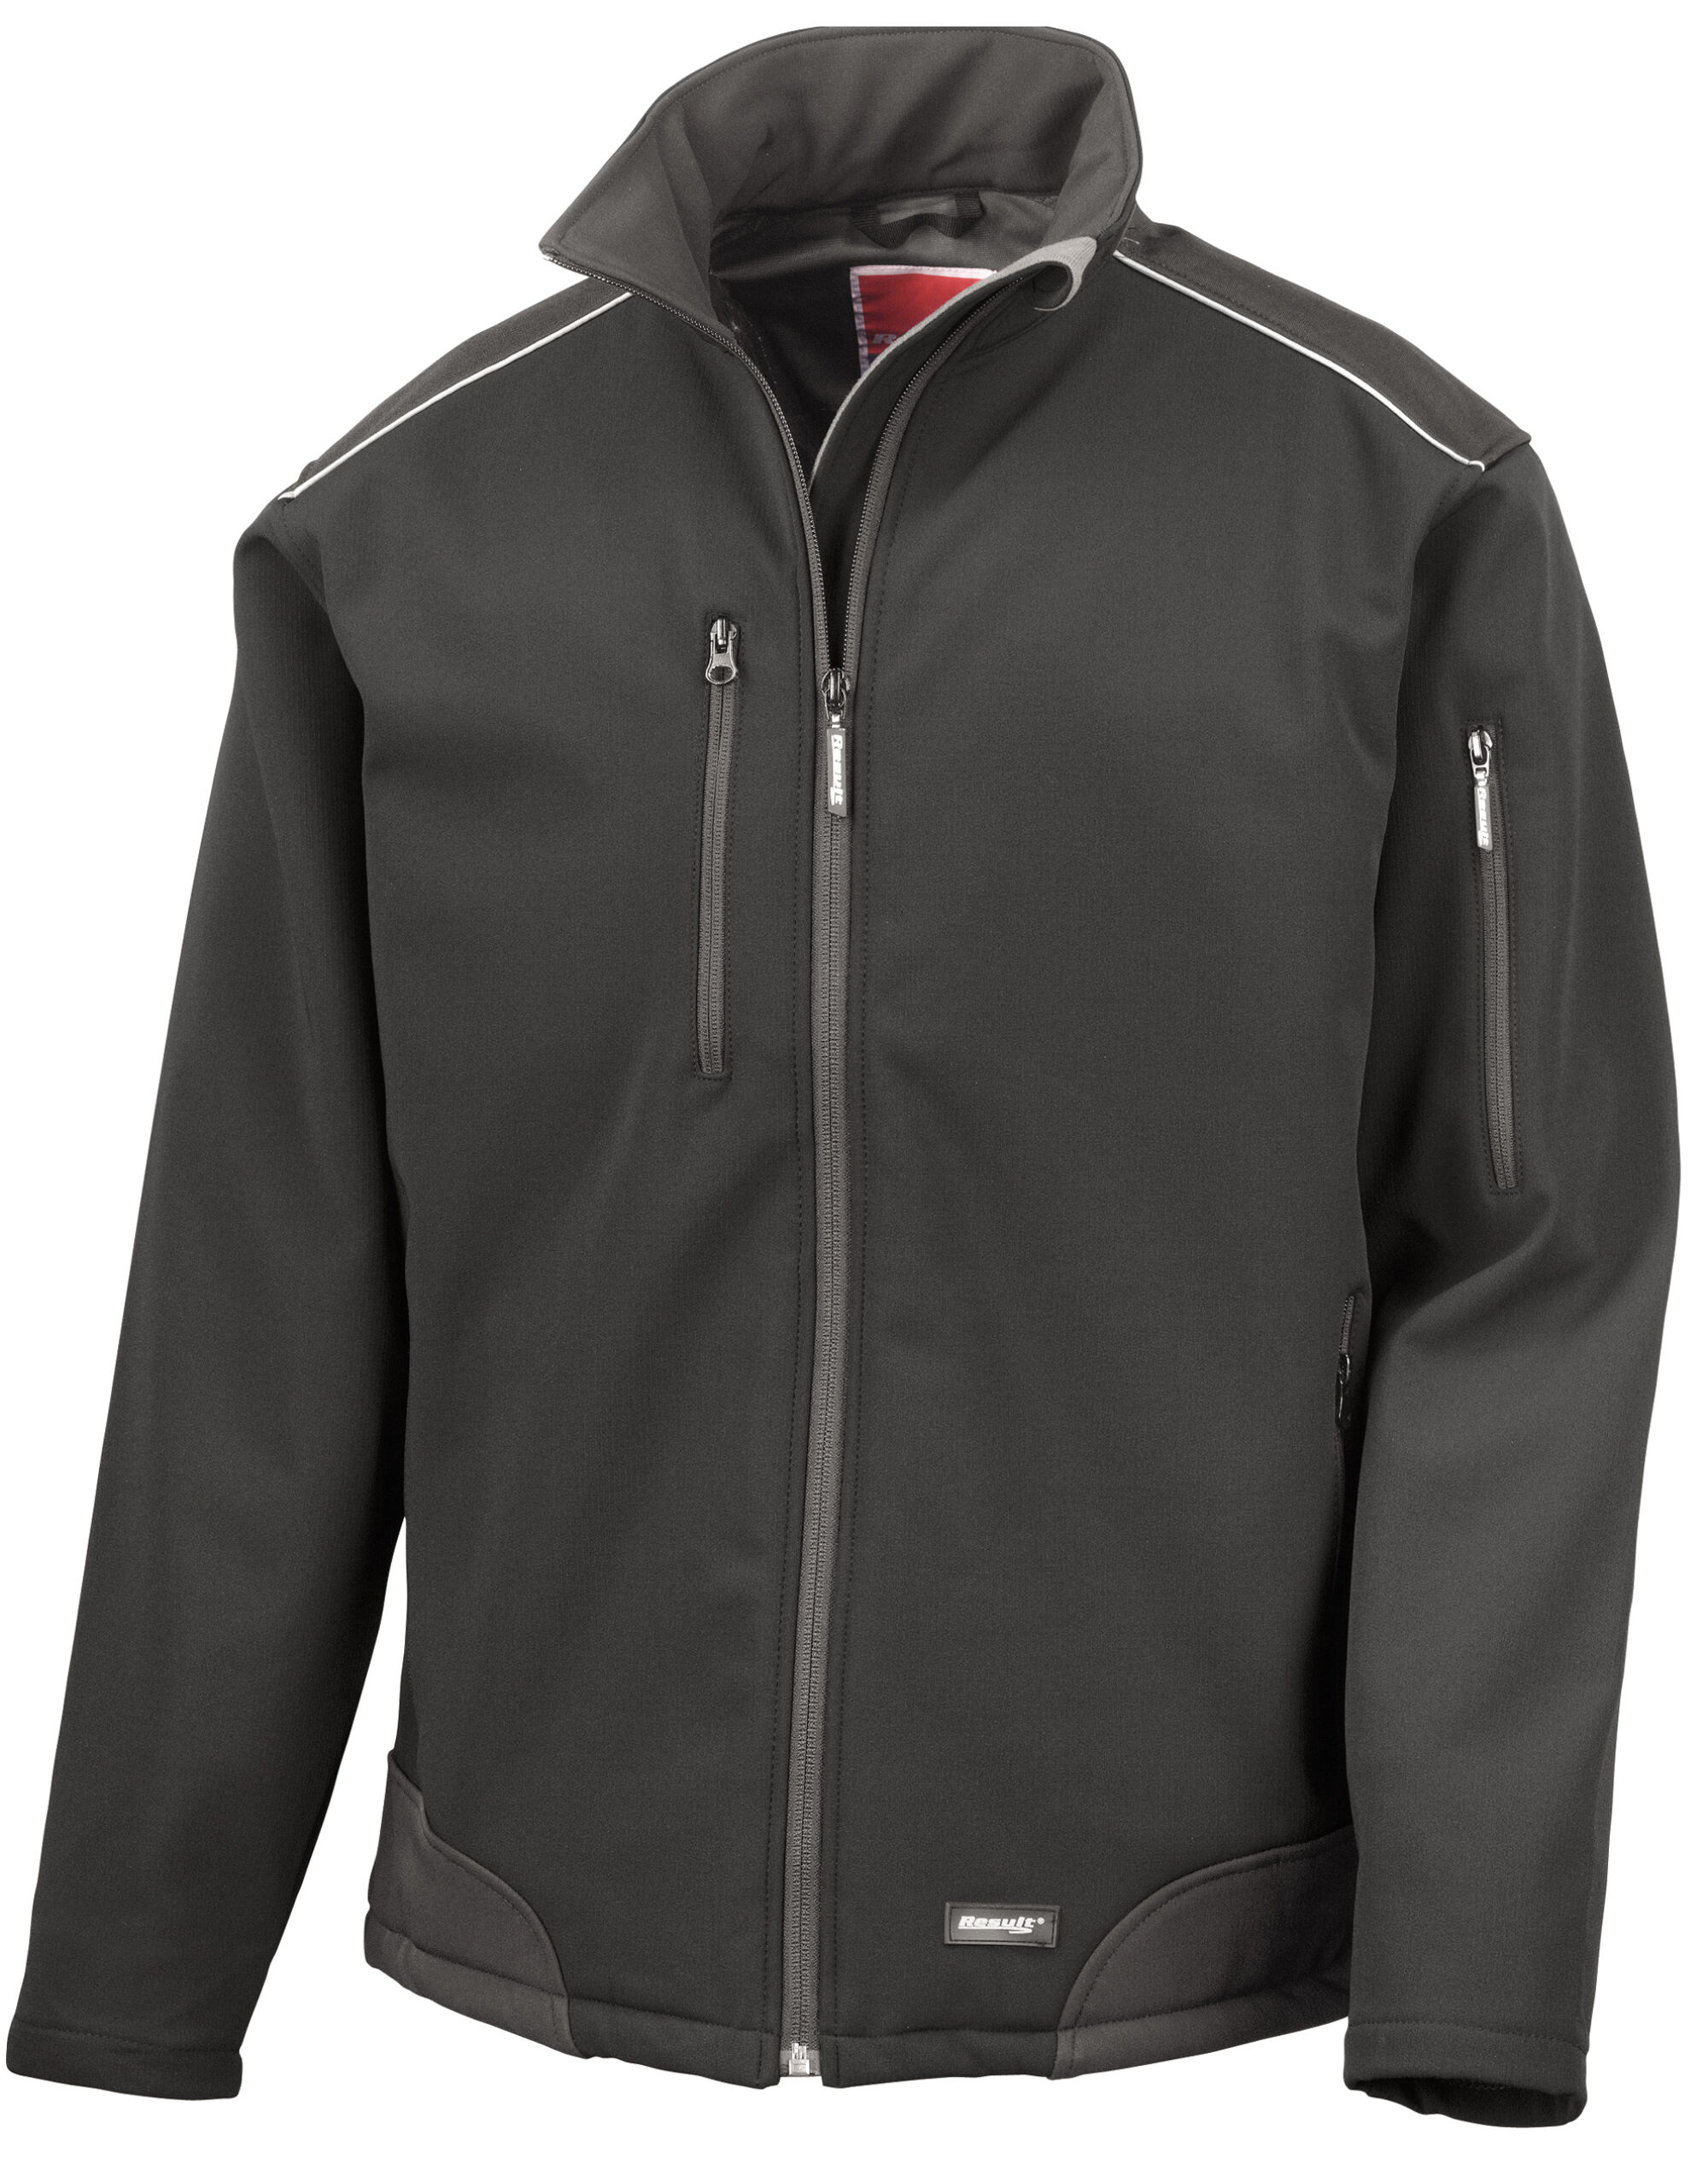 Ripstop Soft Shell Jacket